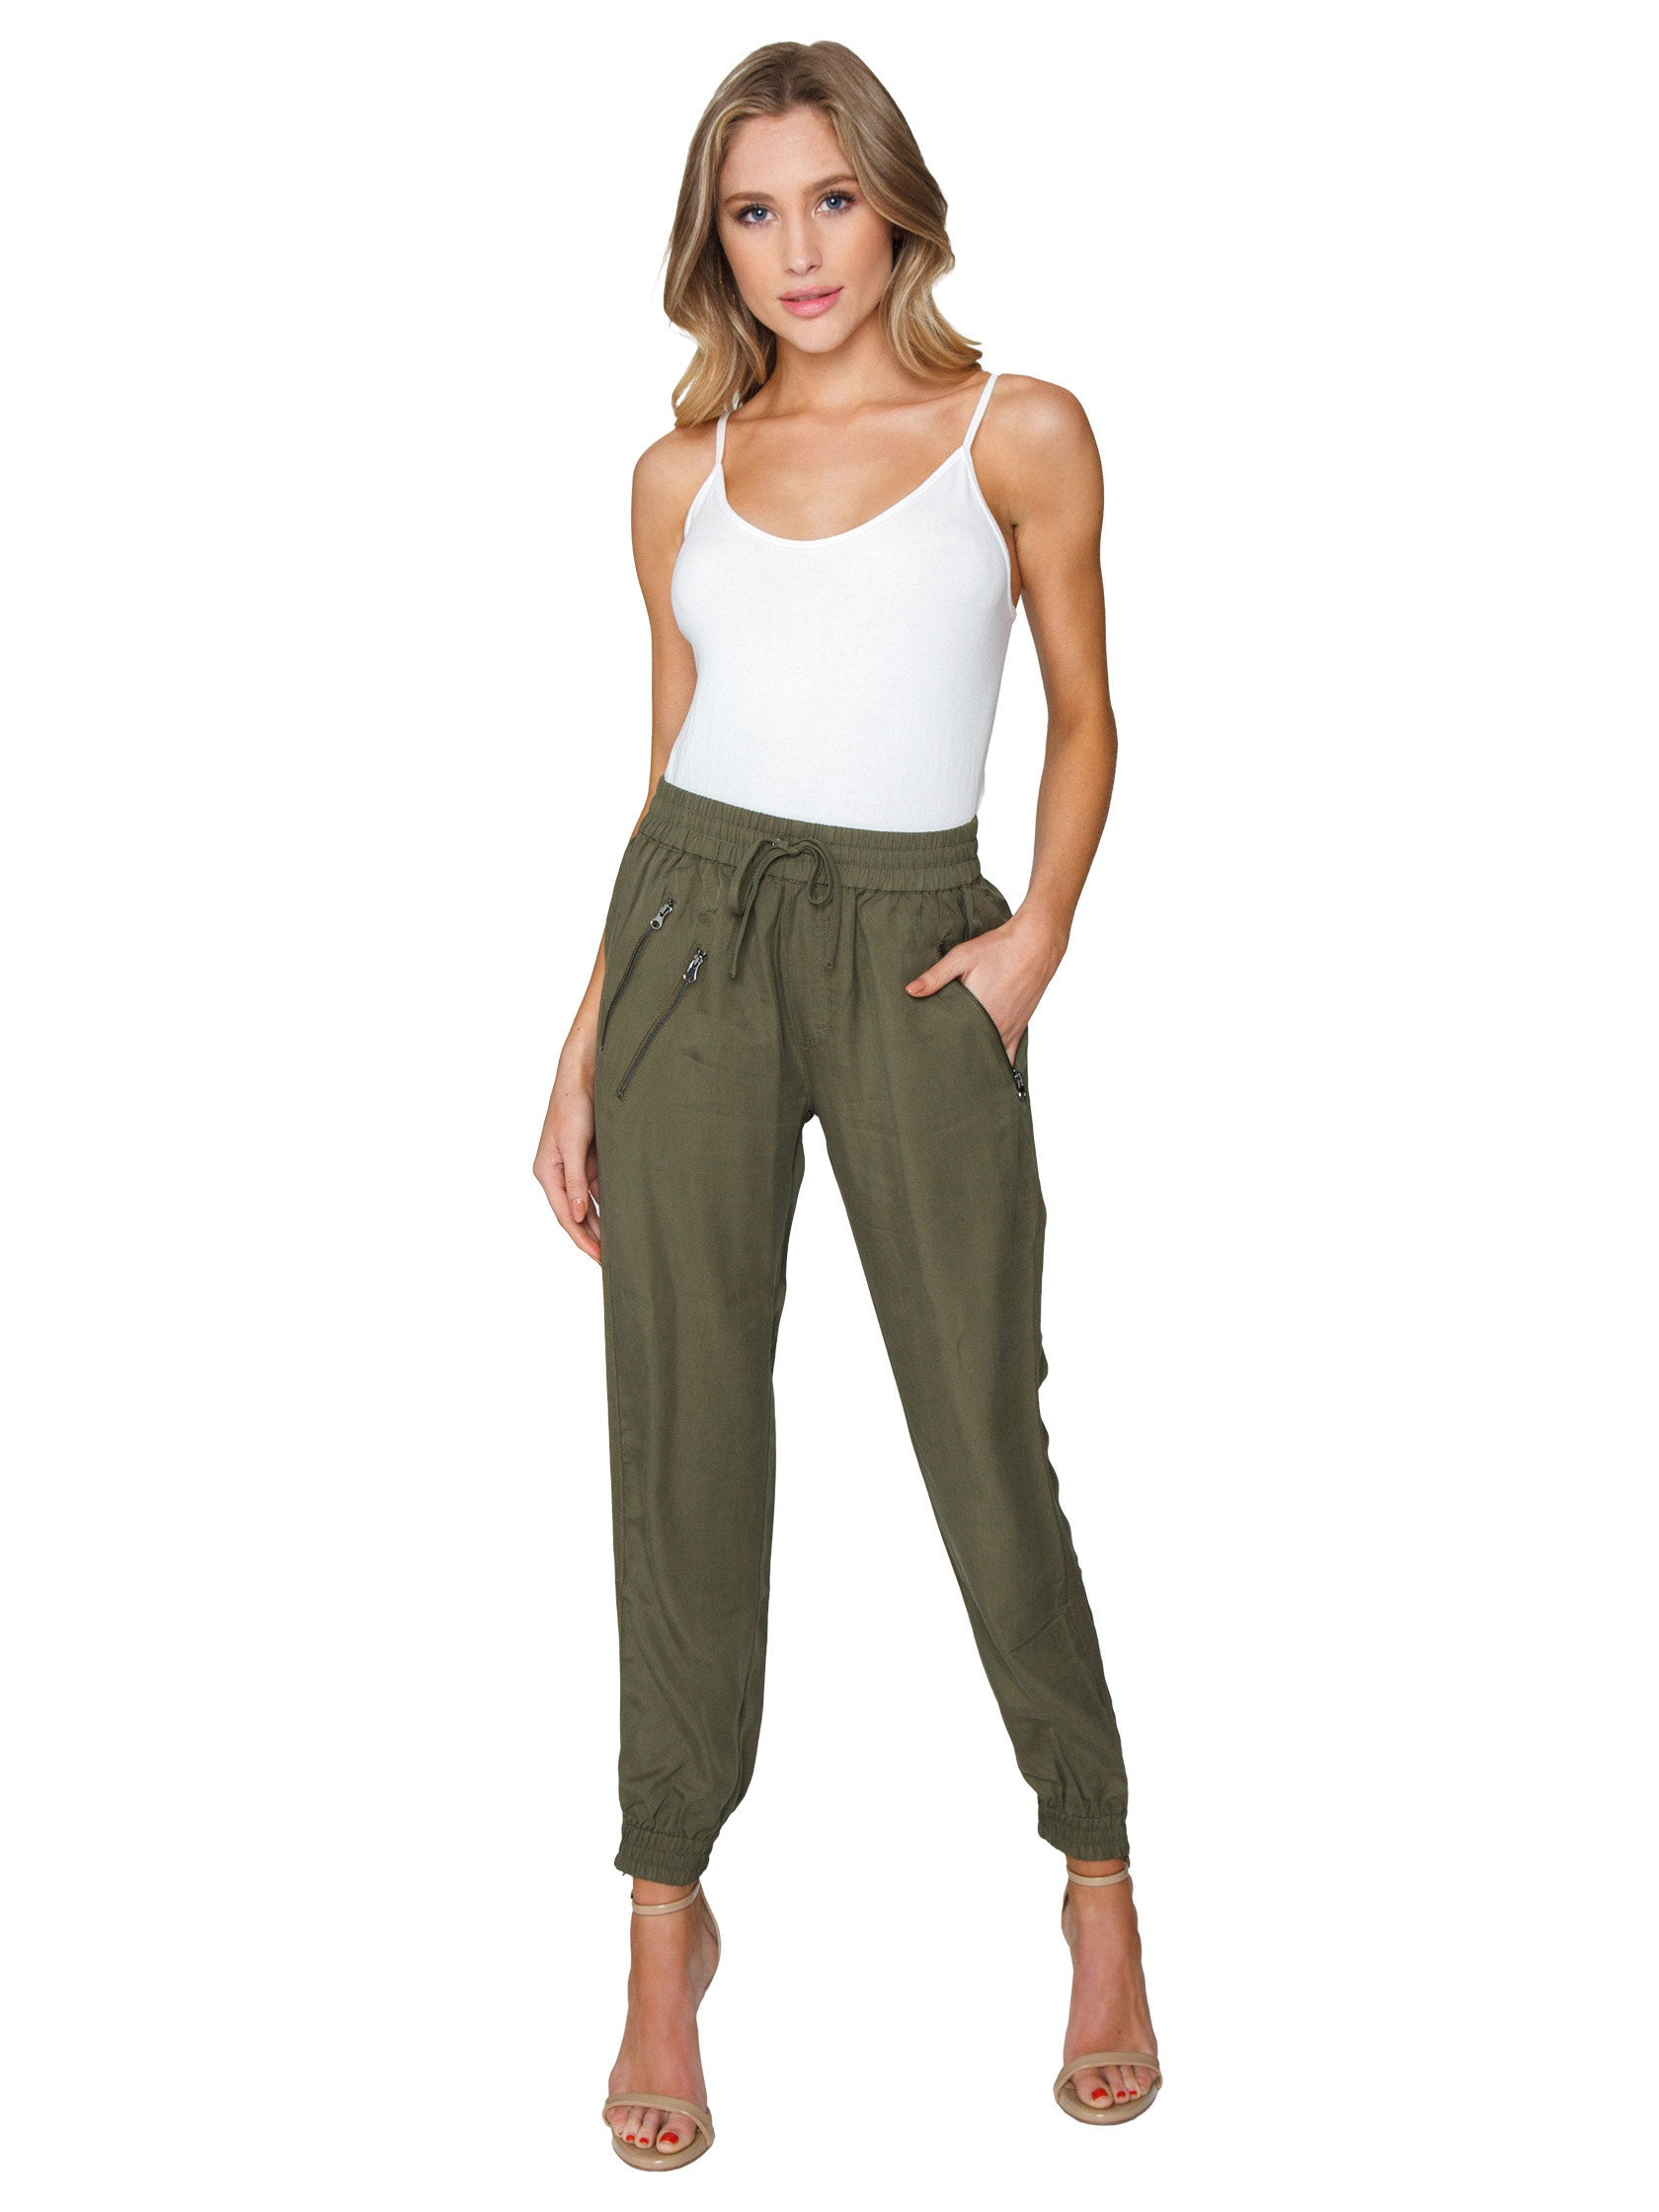 Girl wearing a pants rental from FashionPass called Utility Jogger Pants